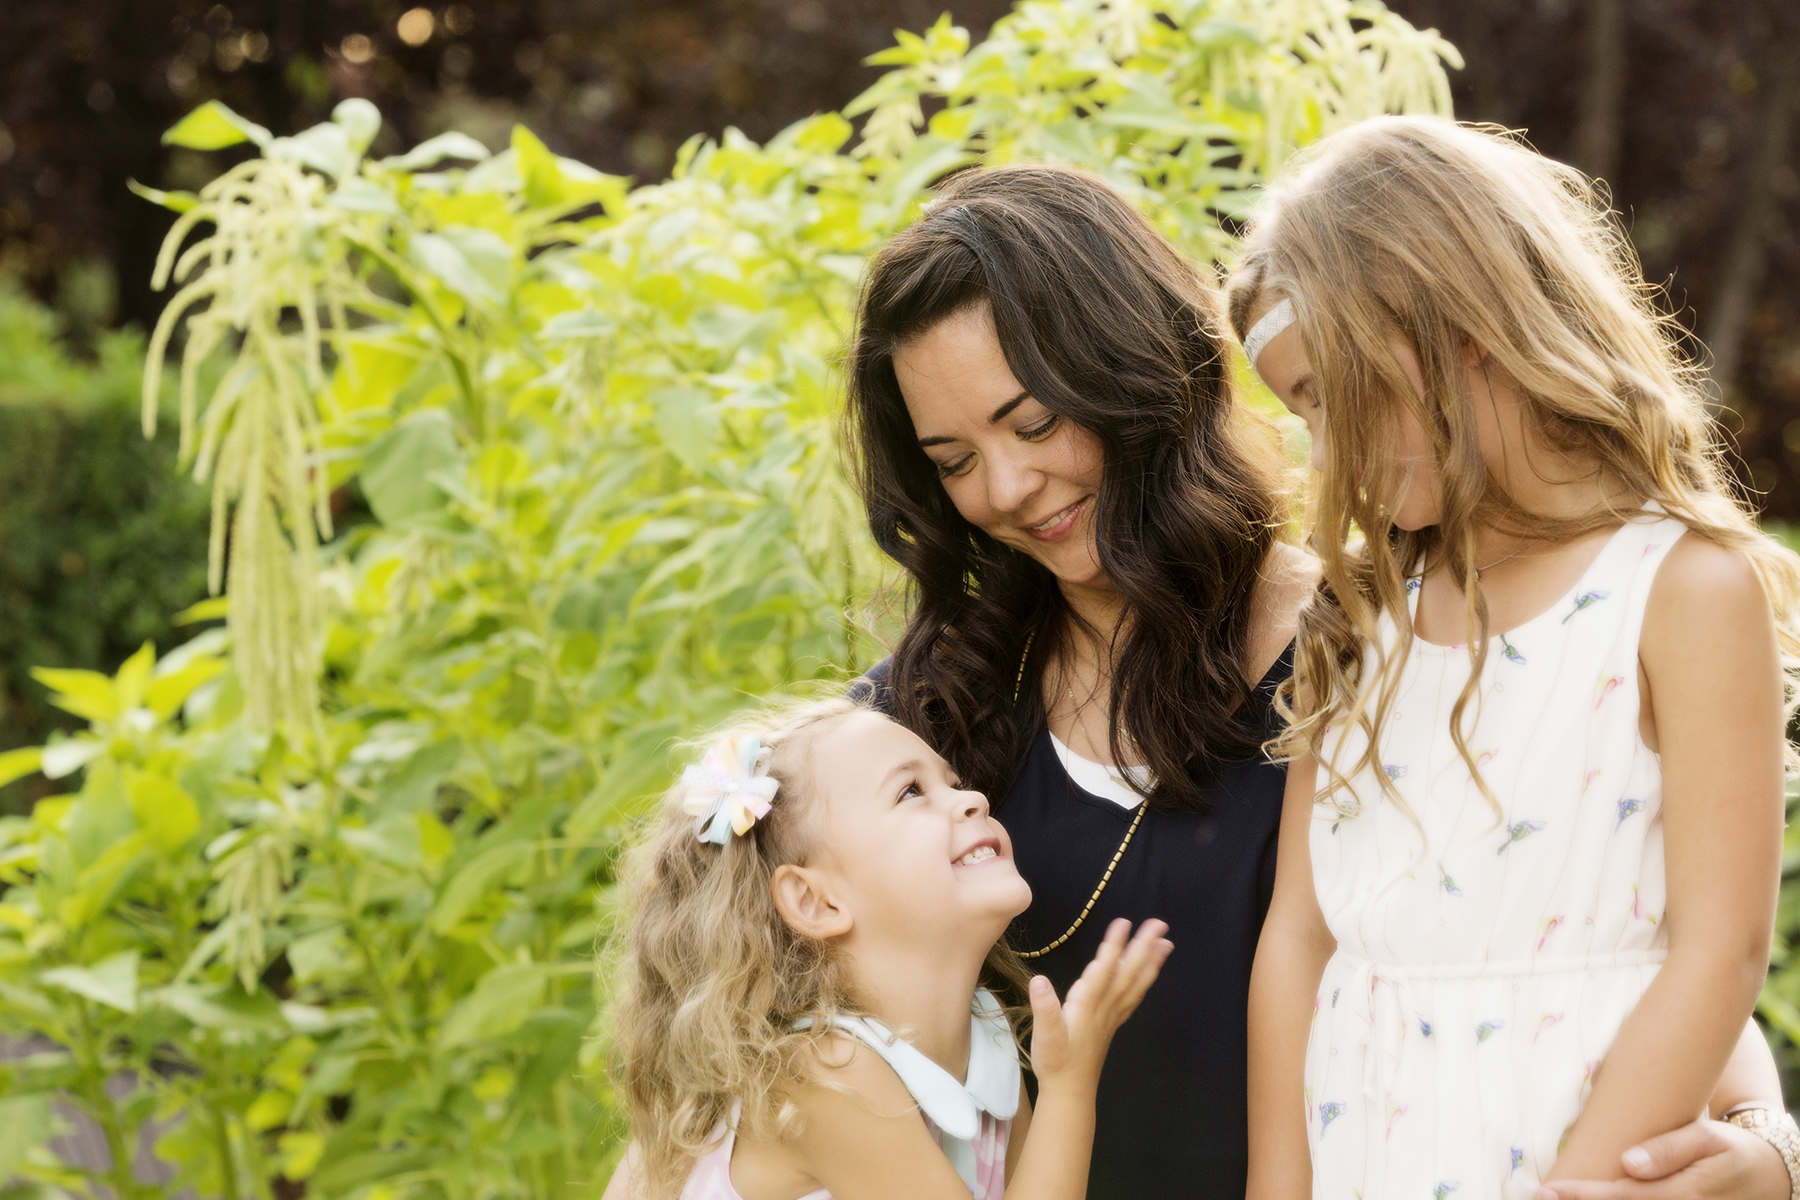 Utah Family Photos mother daughters spring happy